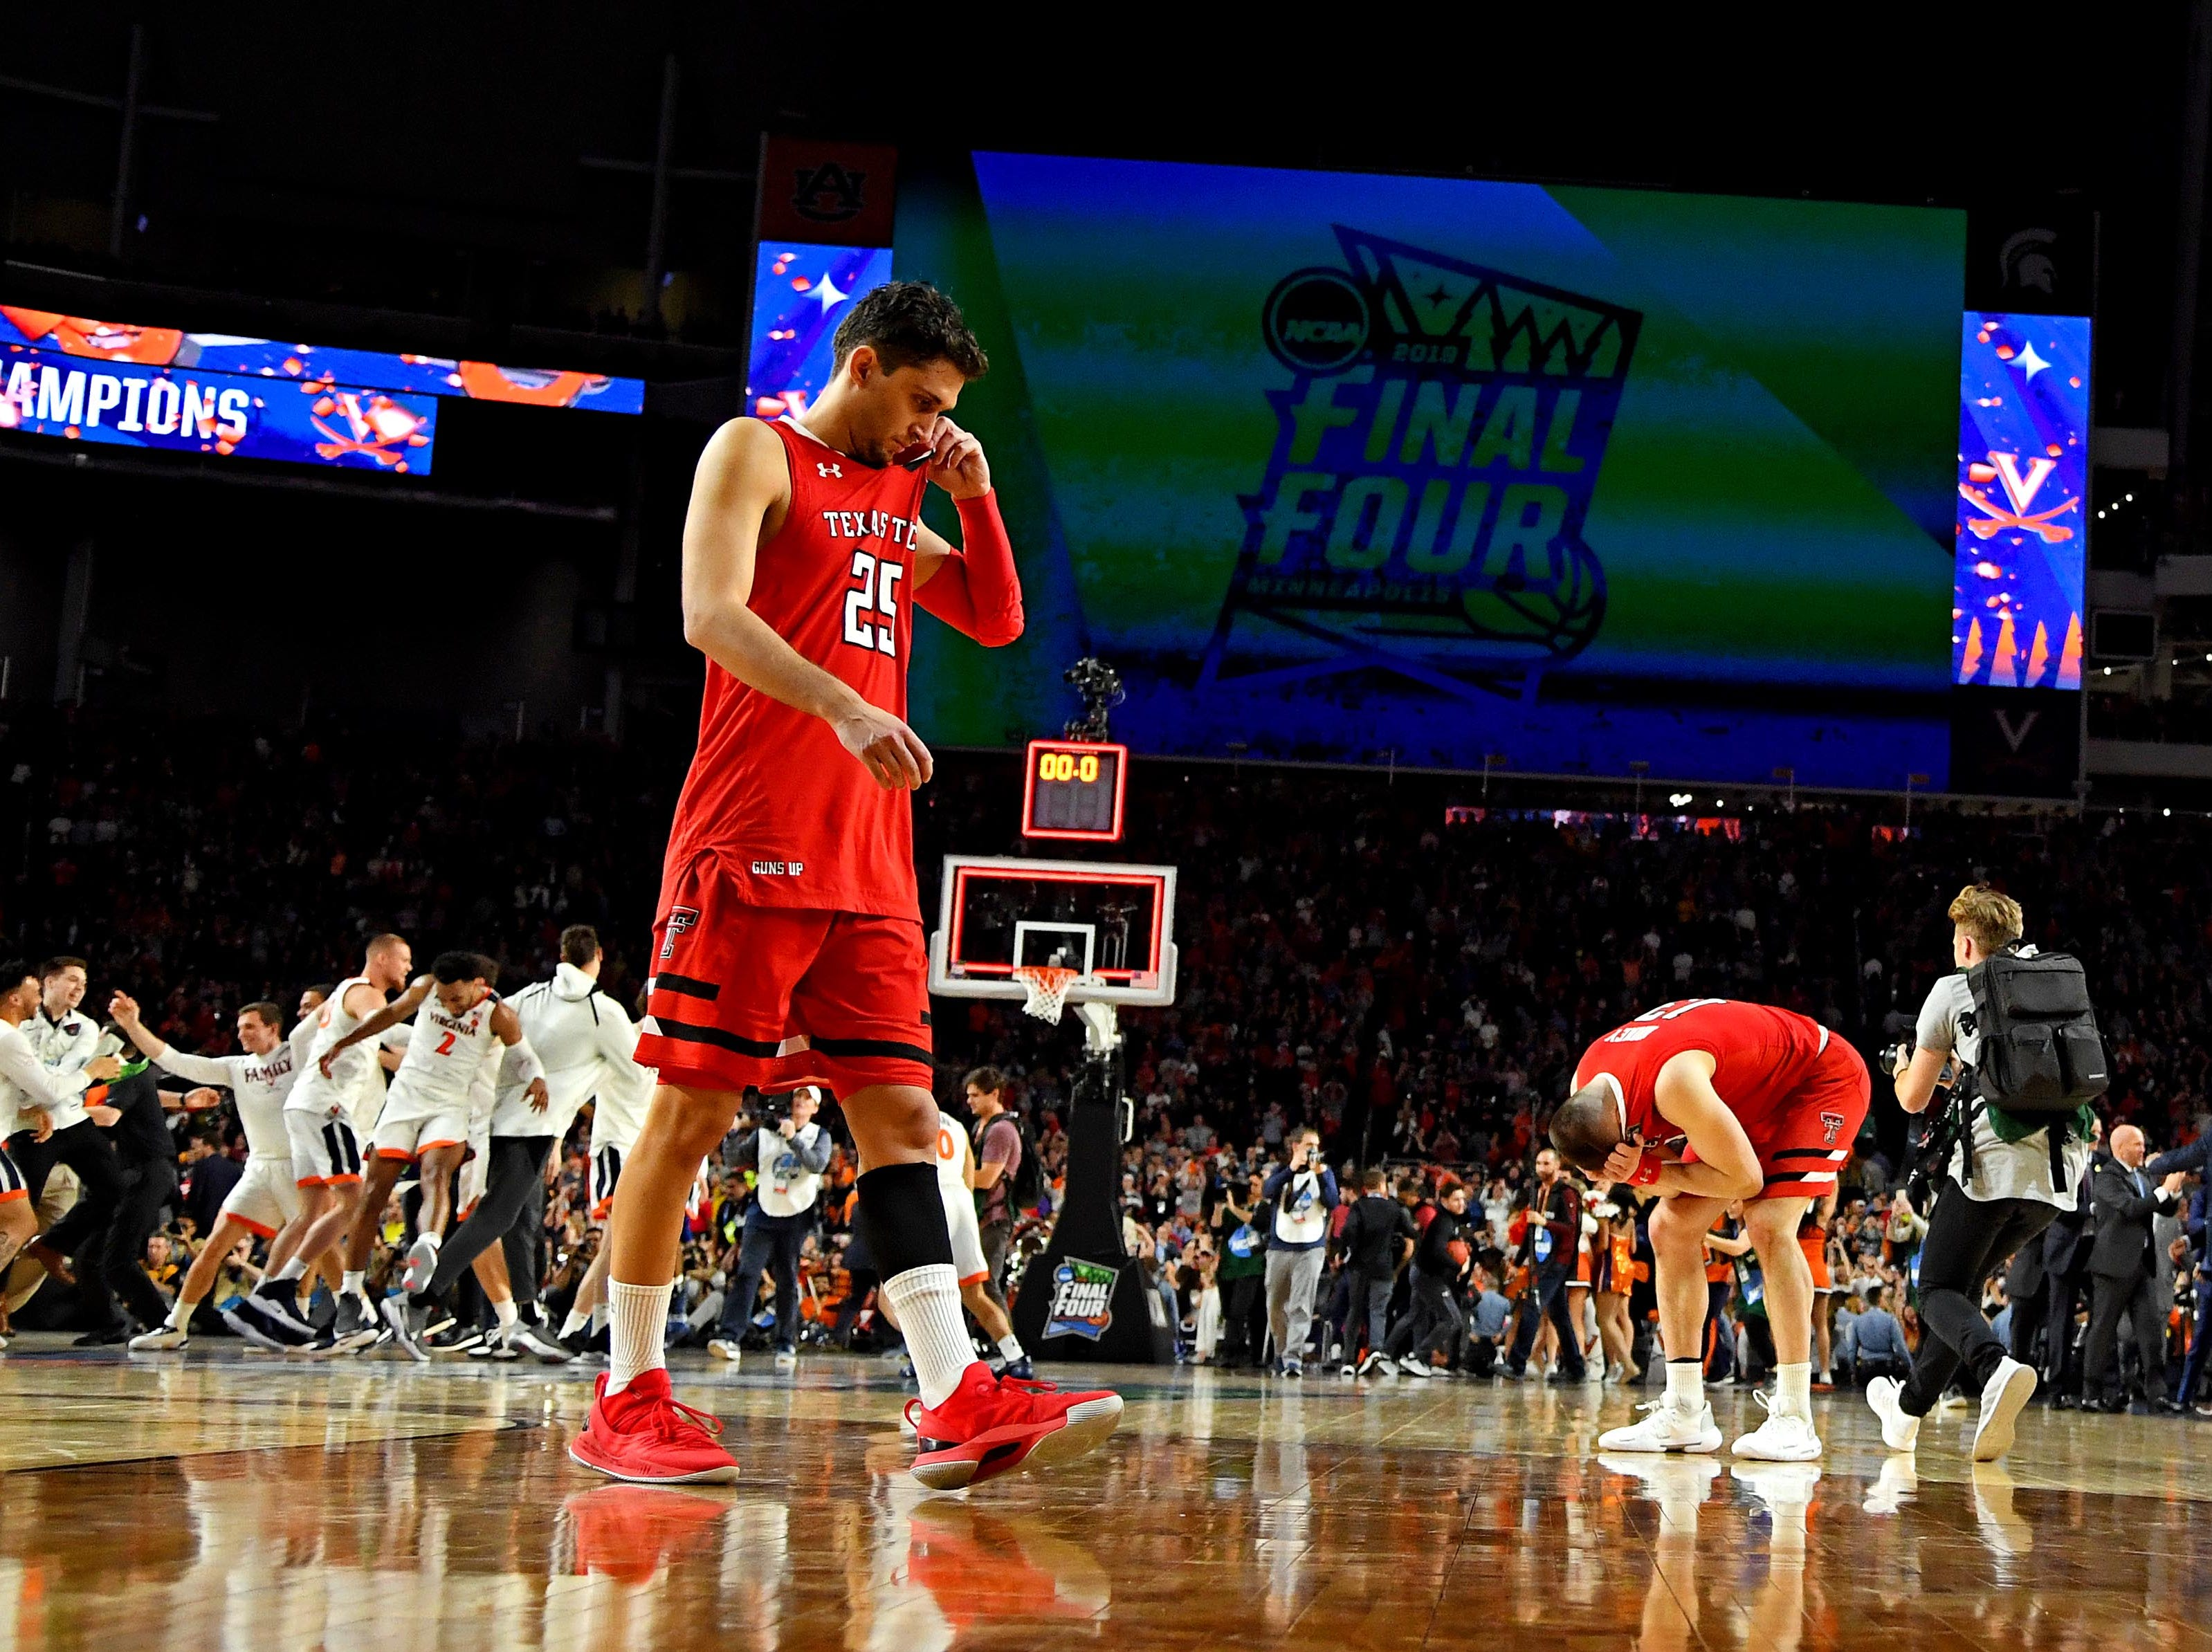 Apr 8, 2019; Minneapolis, MN, USA; Texas Tech Red Raiders guard Davide Moretti (25) and guard Matt Mooney (13) react after losing to the Virginia Cavaliers in the championship game of the 2019 men's Final Four at US Bank Stadium. Mandatory Credit: Bob Donnan-USA TODAY Sports